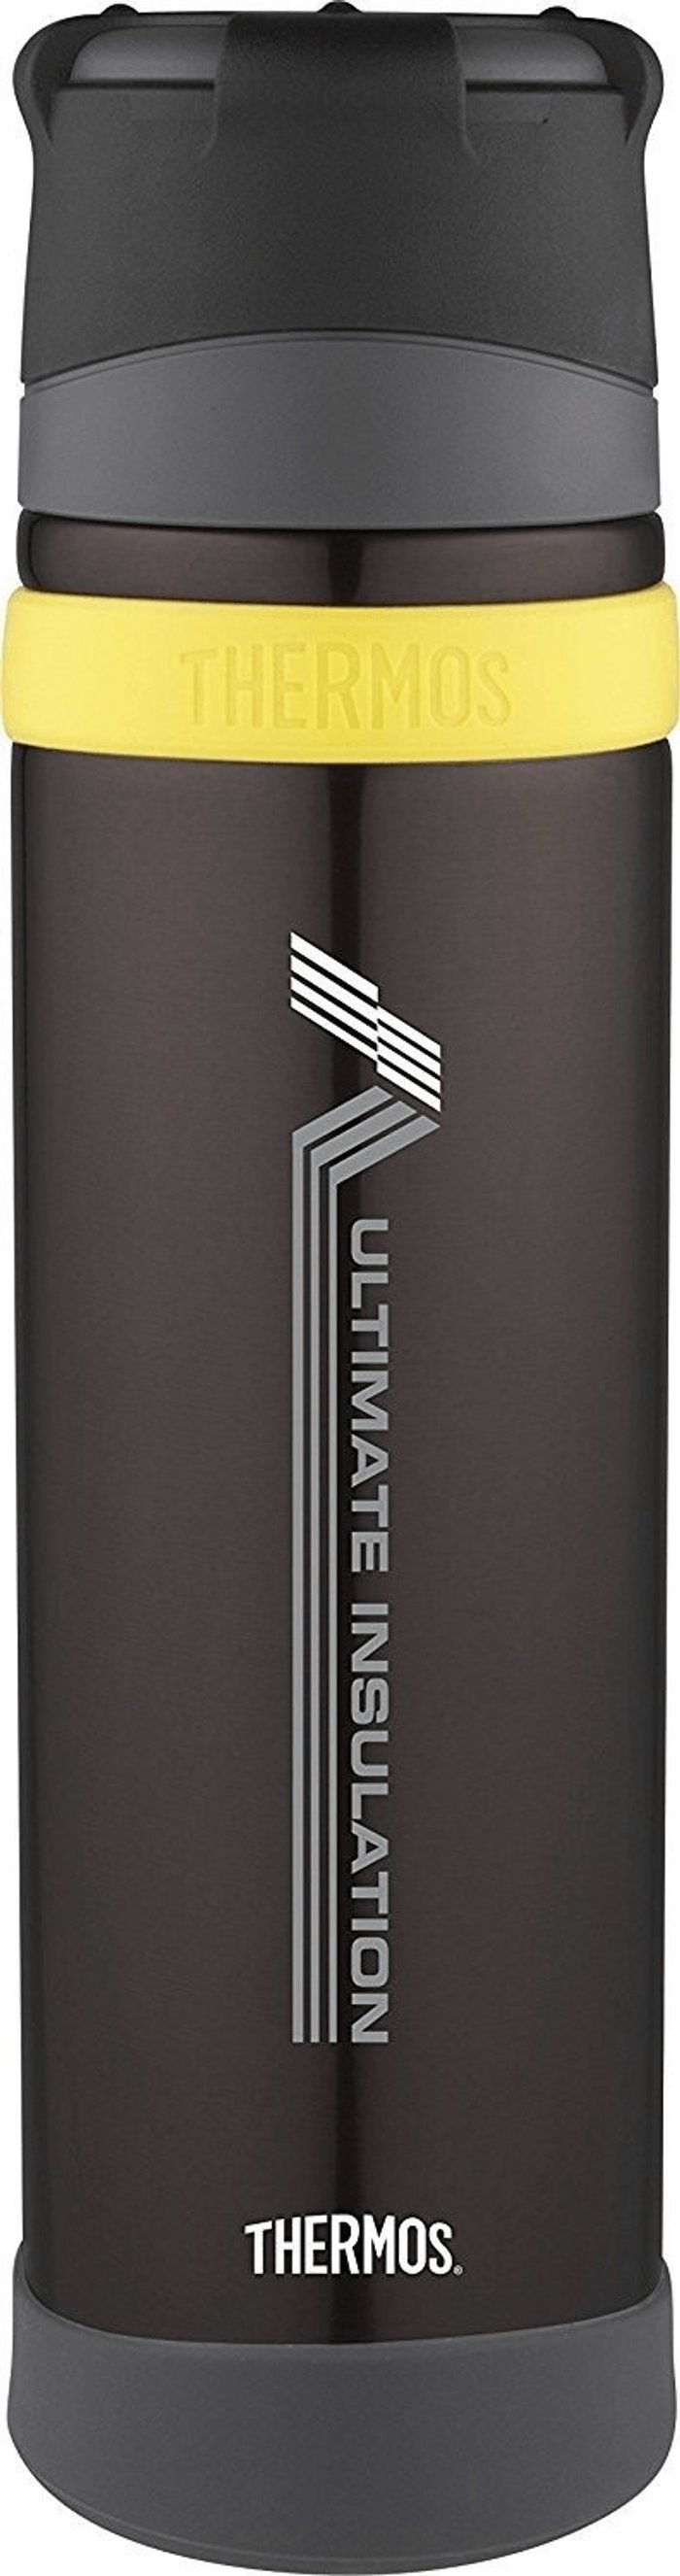 Thermos Thermos Ultimative MK II vacuum flask 900 ml brown